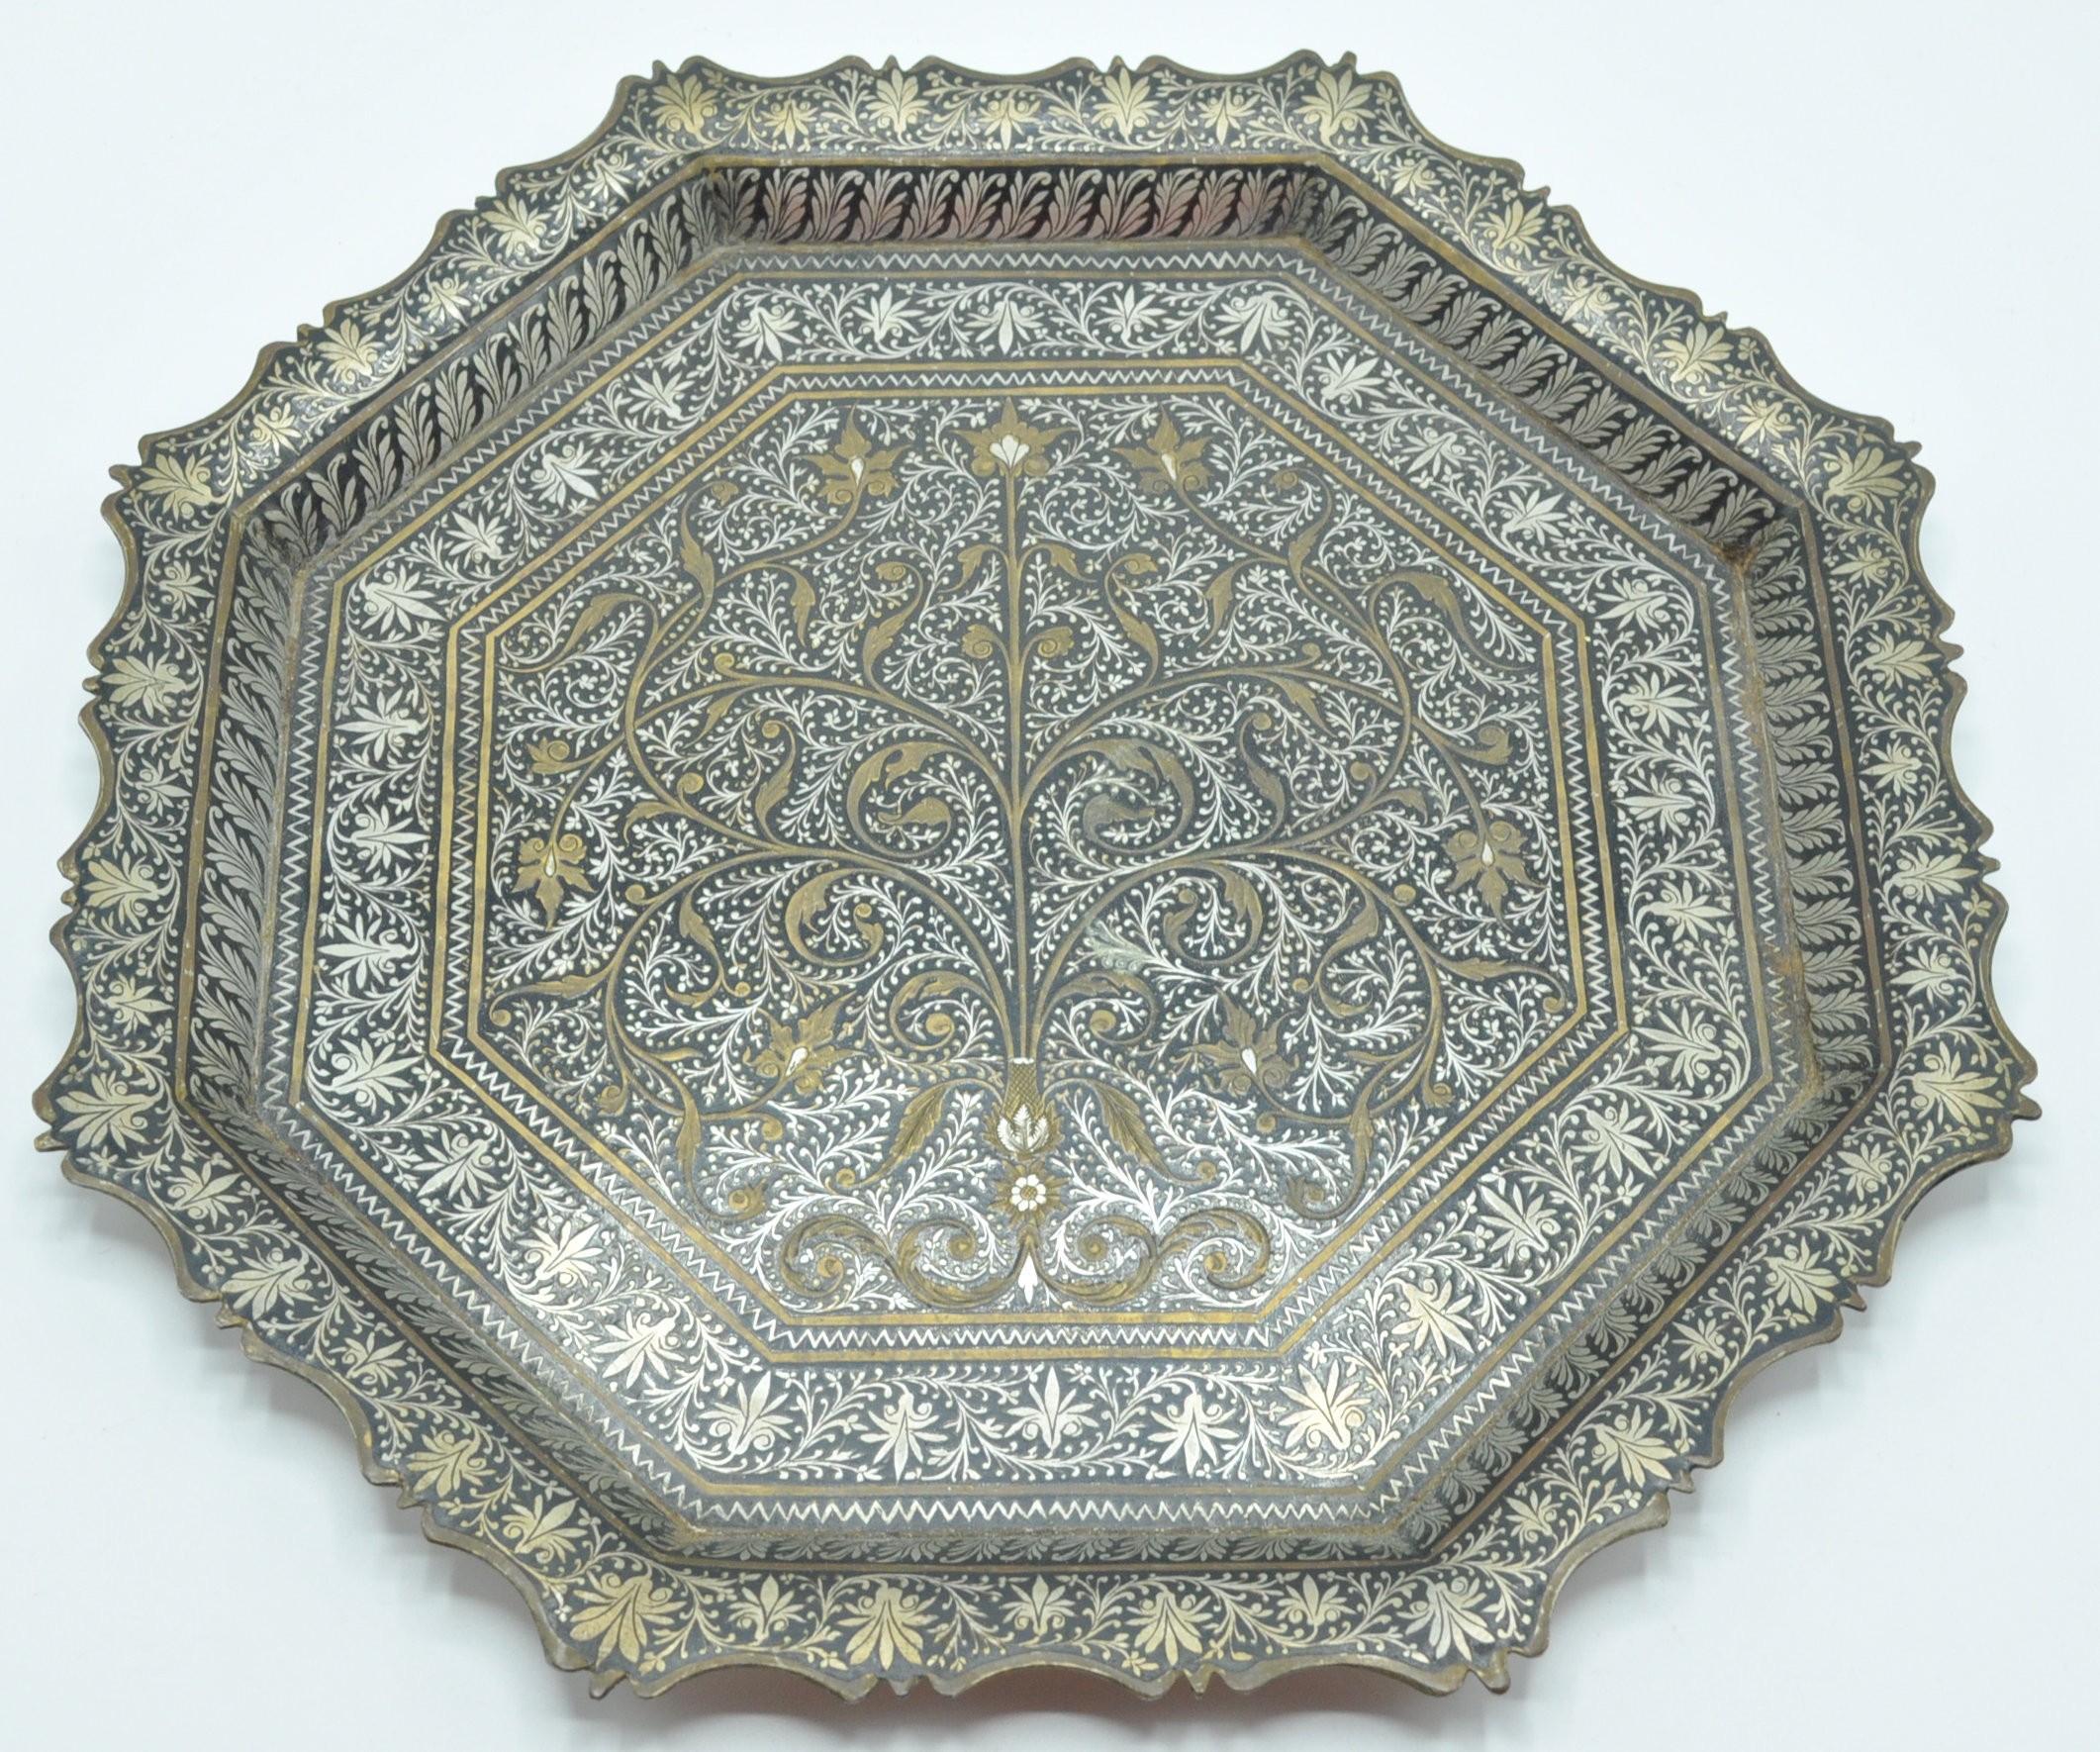 ISLAMIC SILVER PLATE AND BRASS CARD TRAY SALVER